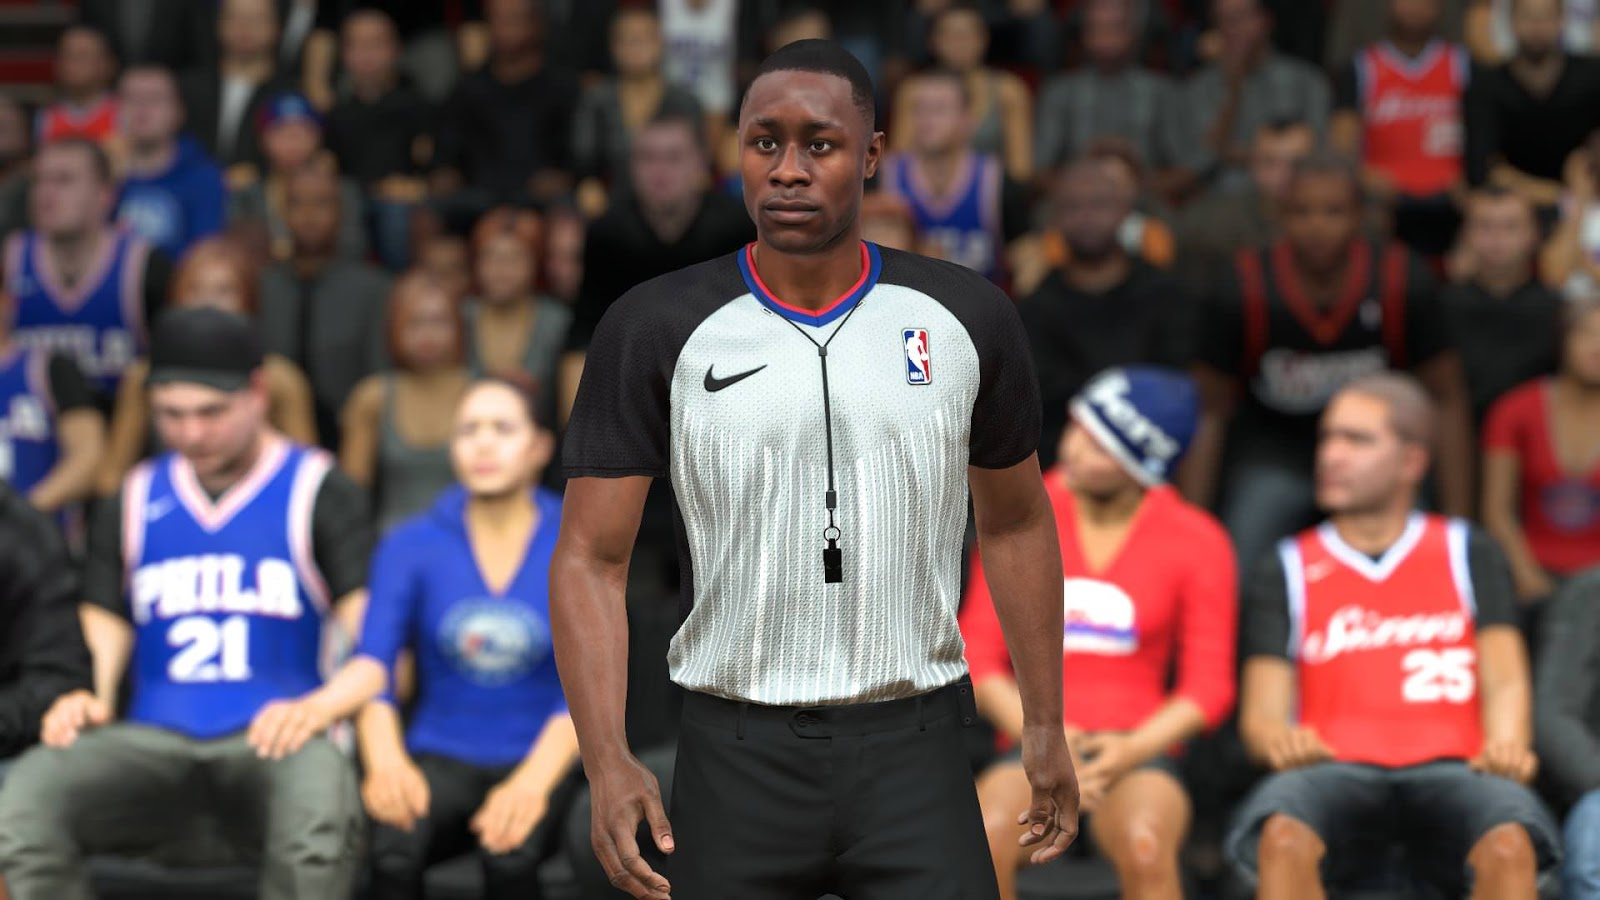 DNA Of Basketball | DNAOBB: NBA 2K18 Nike Logo On Arm Sleeves and Referees Uniforms by YG13 RELEASED